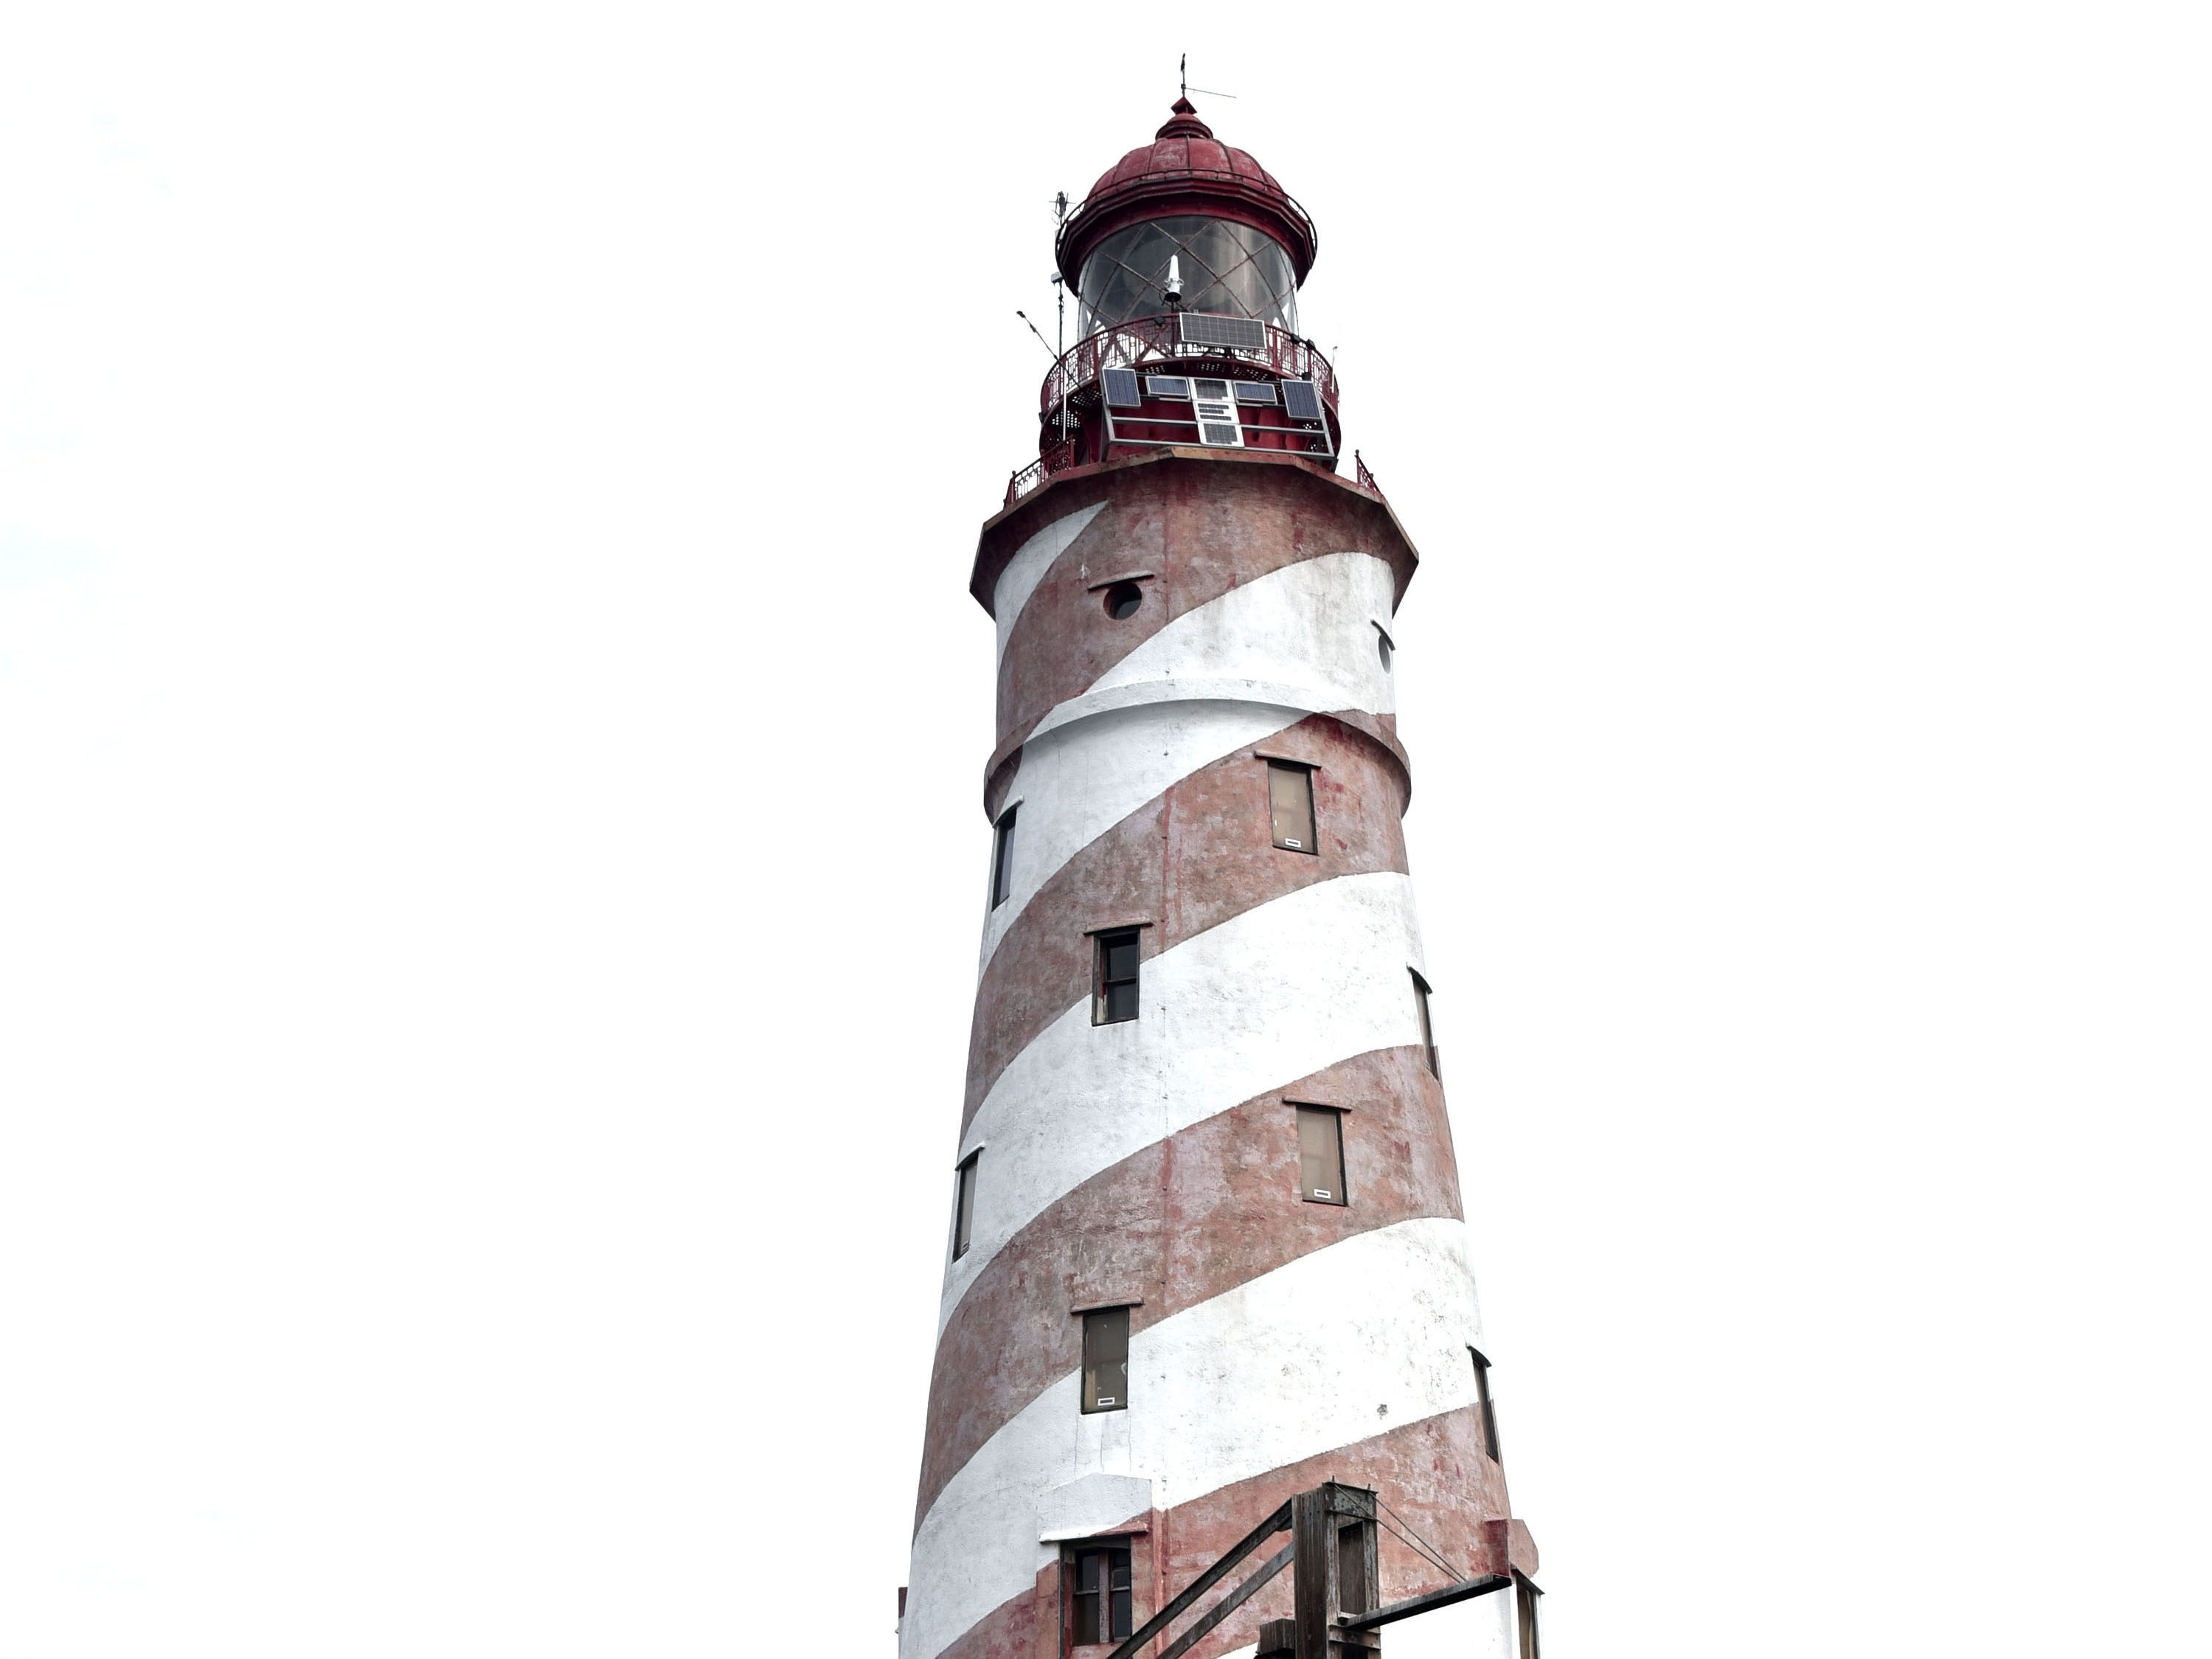 The White Shoal Lighthouse, completed and lighted in 1910, stands 121 feet tall, and is the only lighthouse in the United States to sport a 'barber pole' paint spiral, Sunday, Sept 2, 2018.